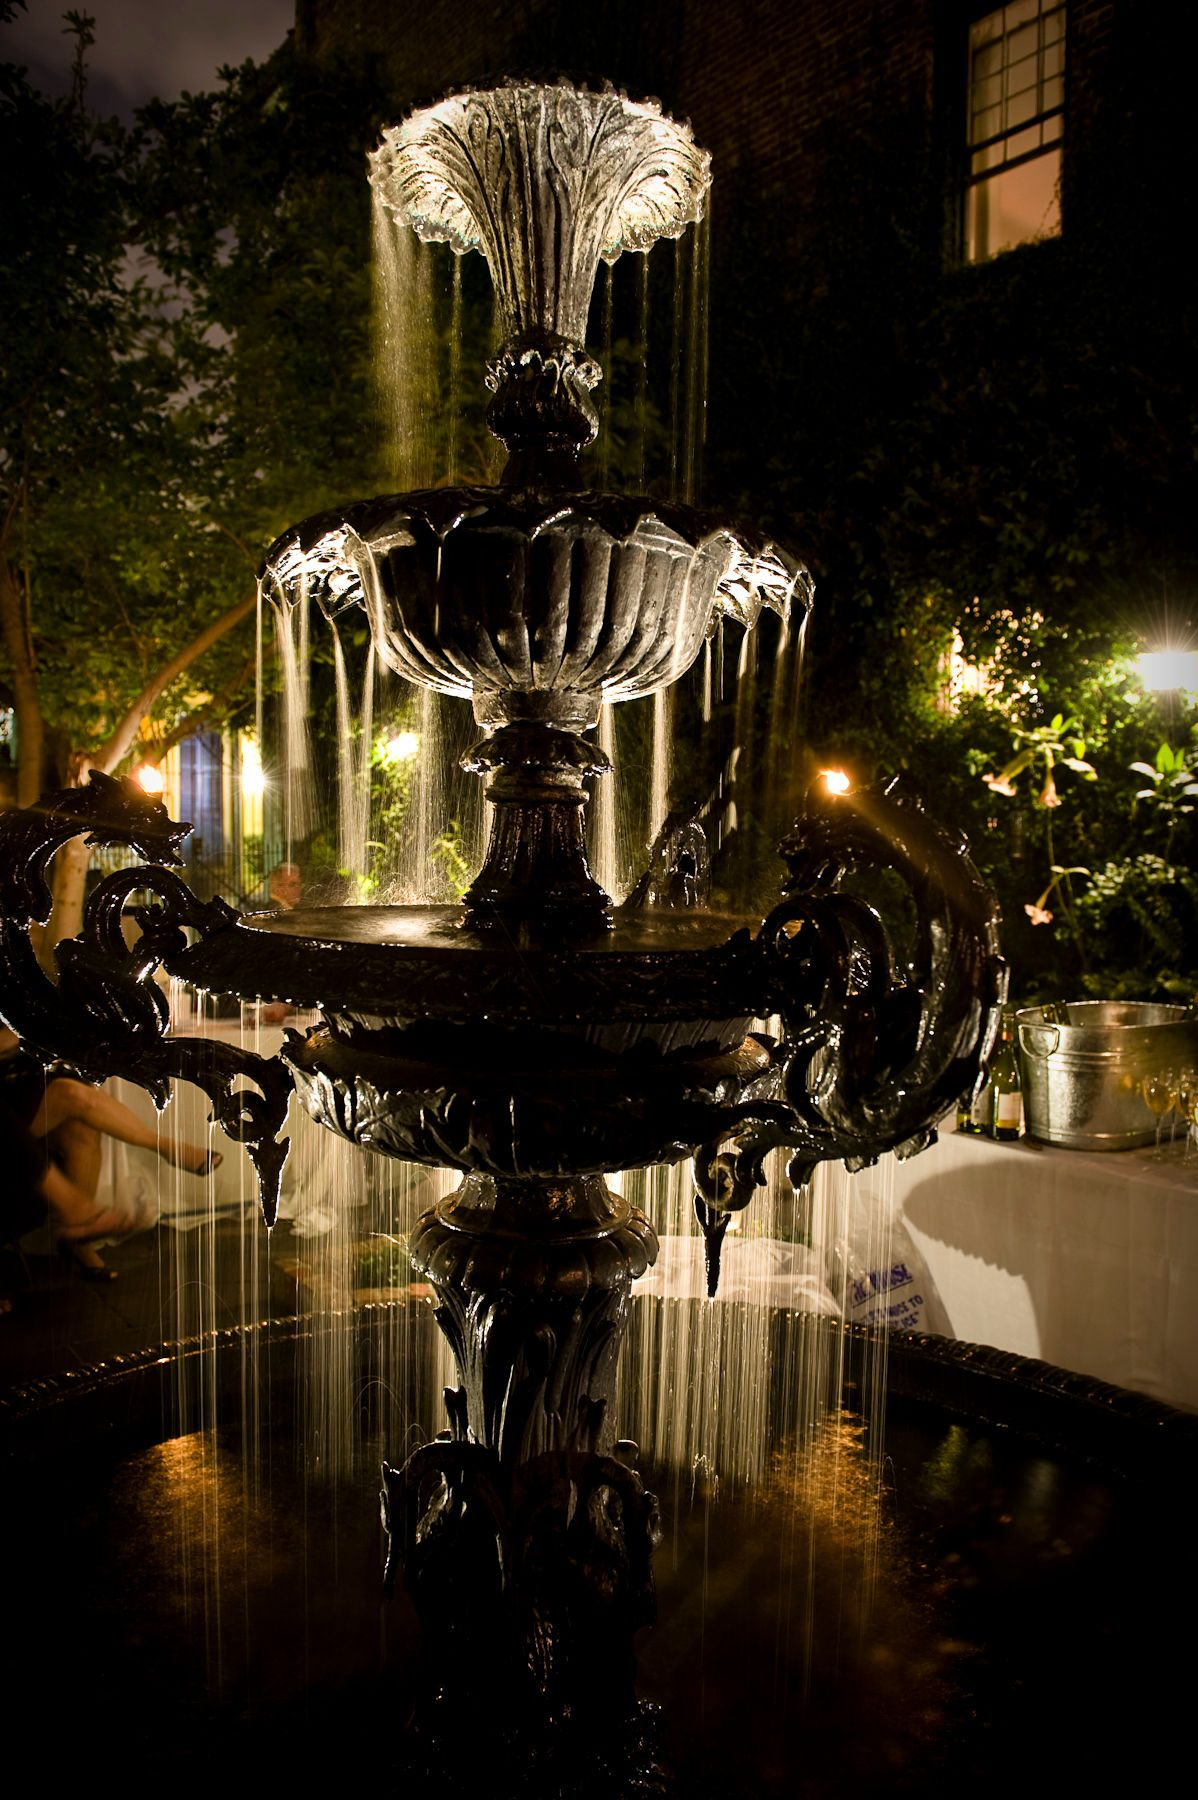 Dining at Cafe Amelie Fountain, My secret garden, Fountains